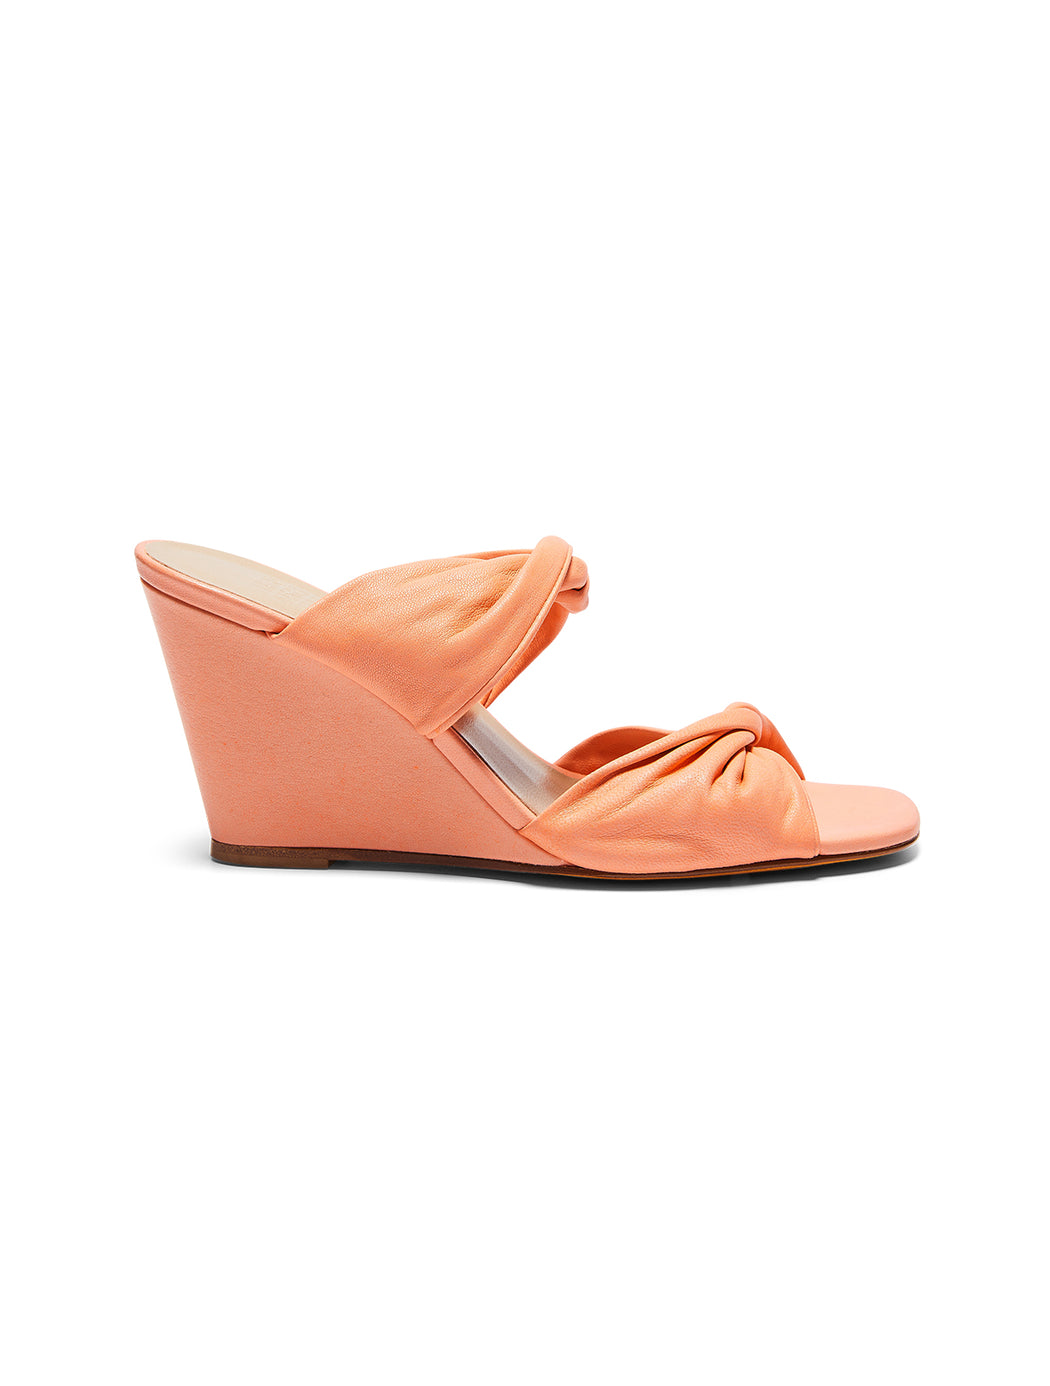 Carine Wedge